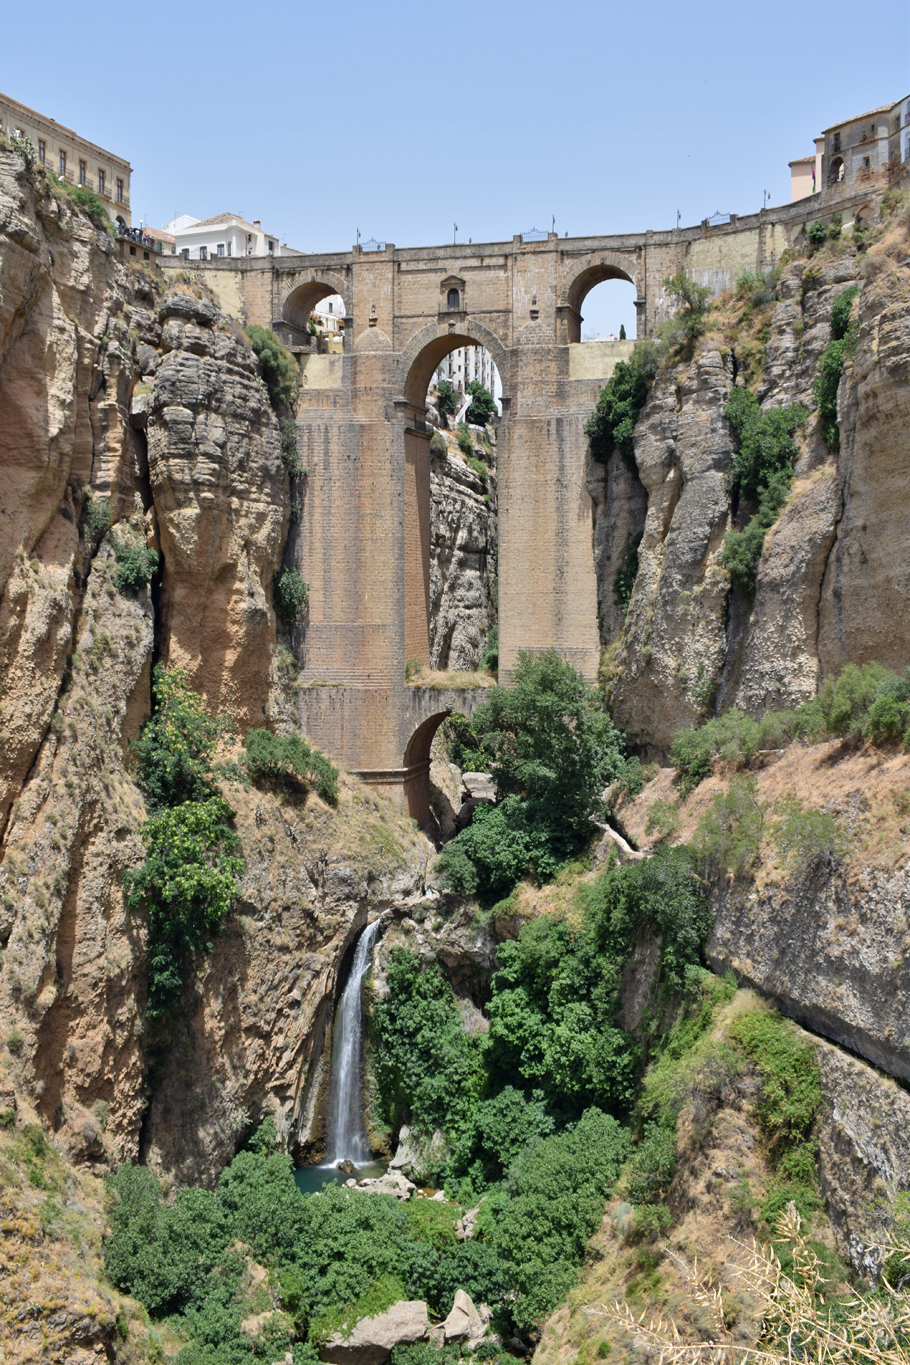 Get in your (rental) car and hit the road: From historic palaces to quaint towns and geopolitical anomalies, a road trip through southern Spain has lots to offer. Here are some tips on how to make the journey the best it can be, and what you can see, eat and do in Granada, Ronda, Gibraltar, Cádiz and Seville.